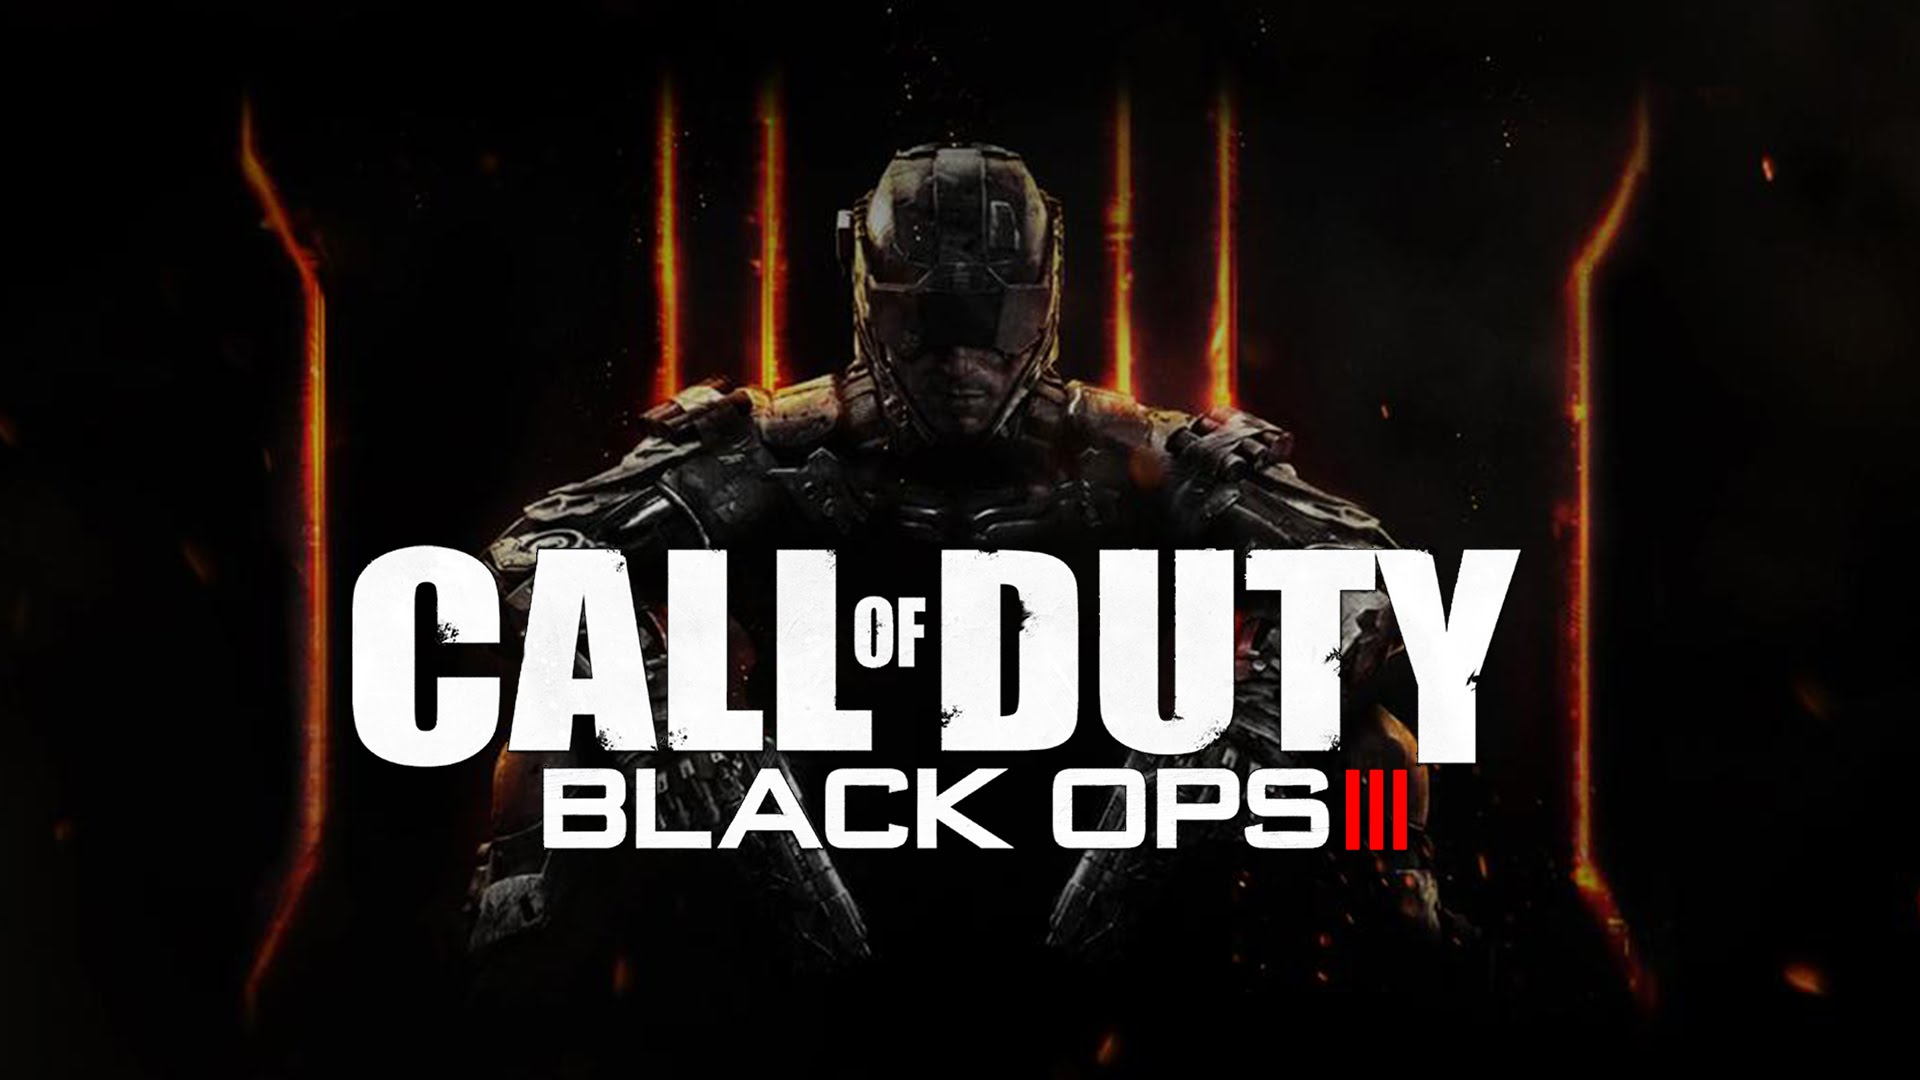 Call of Duty: Black Ops III – Beta details!